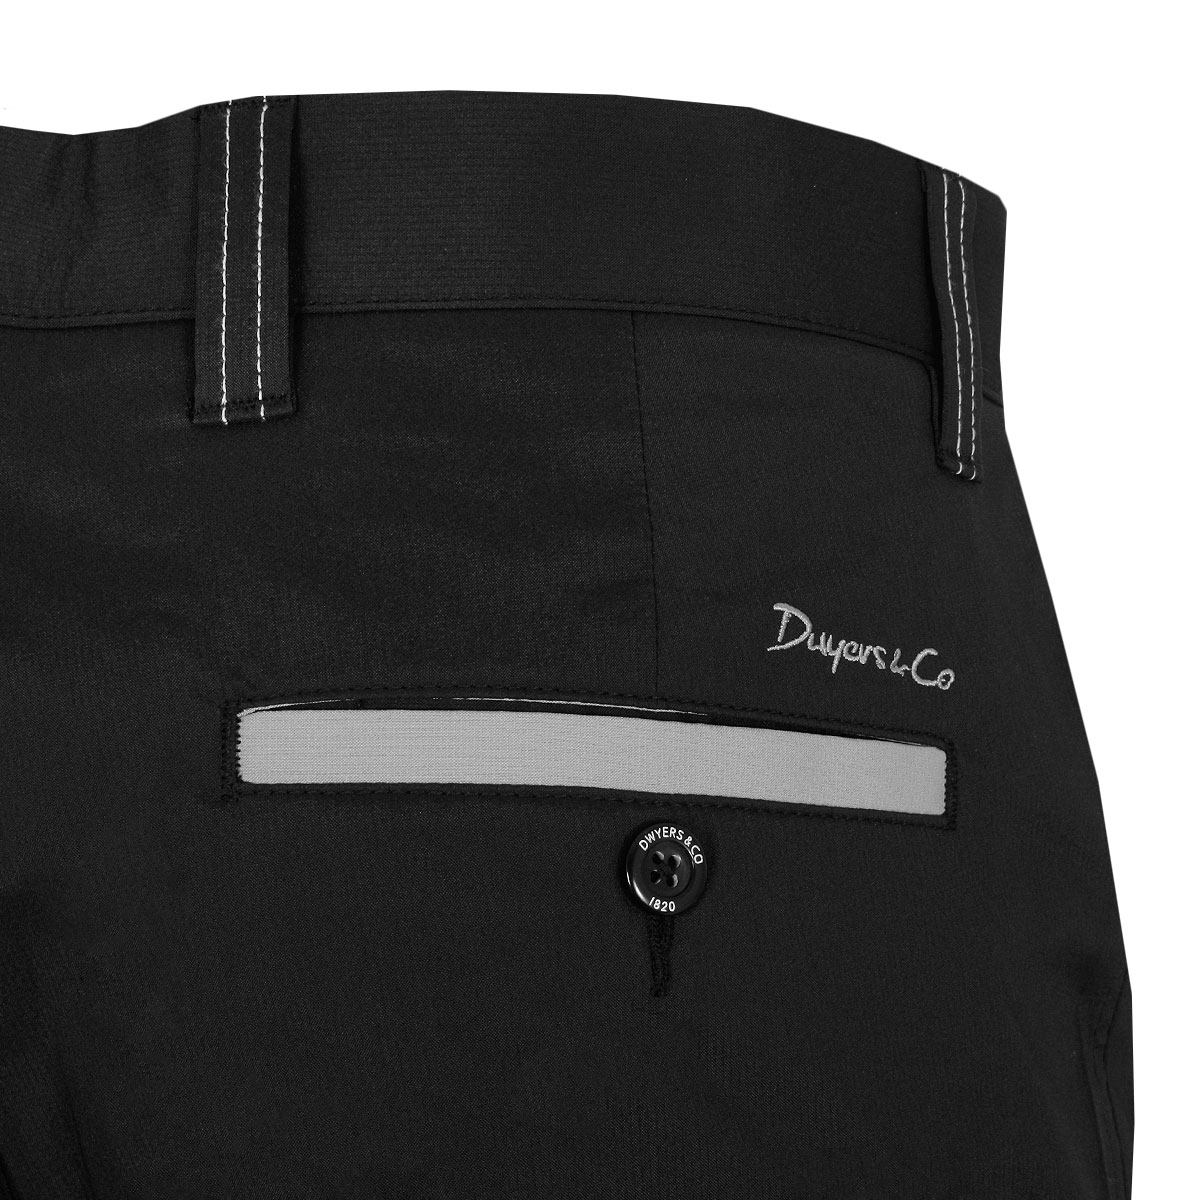 Dwyers-amp-Co-Mens-Matchplay-Performance-Golf-Lightweight-Shorts-26-OFF-RRP thumbnail 4